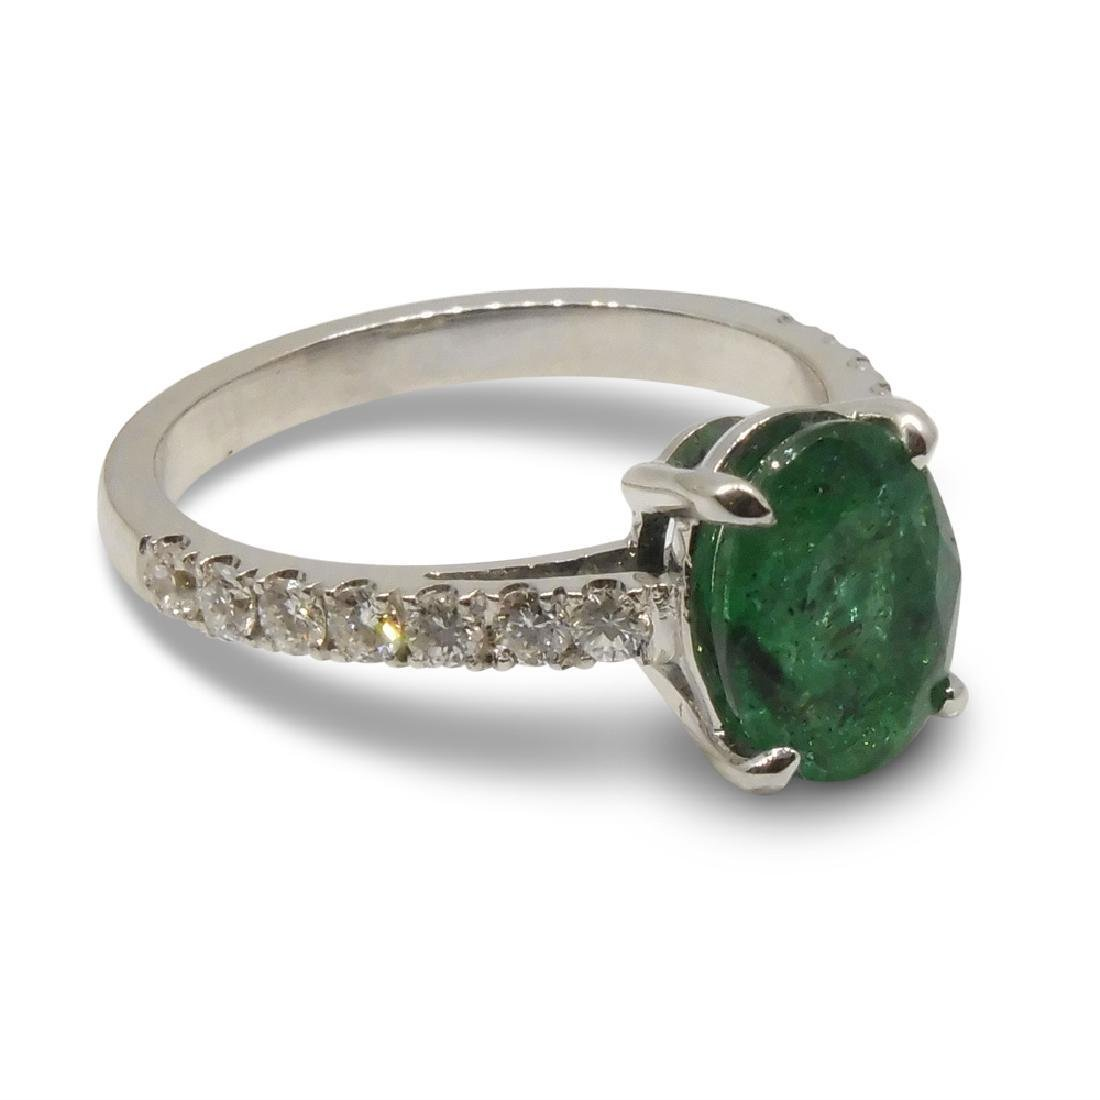 14K White Gold Emerald Diamond Ring, 1.82ct - 7